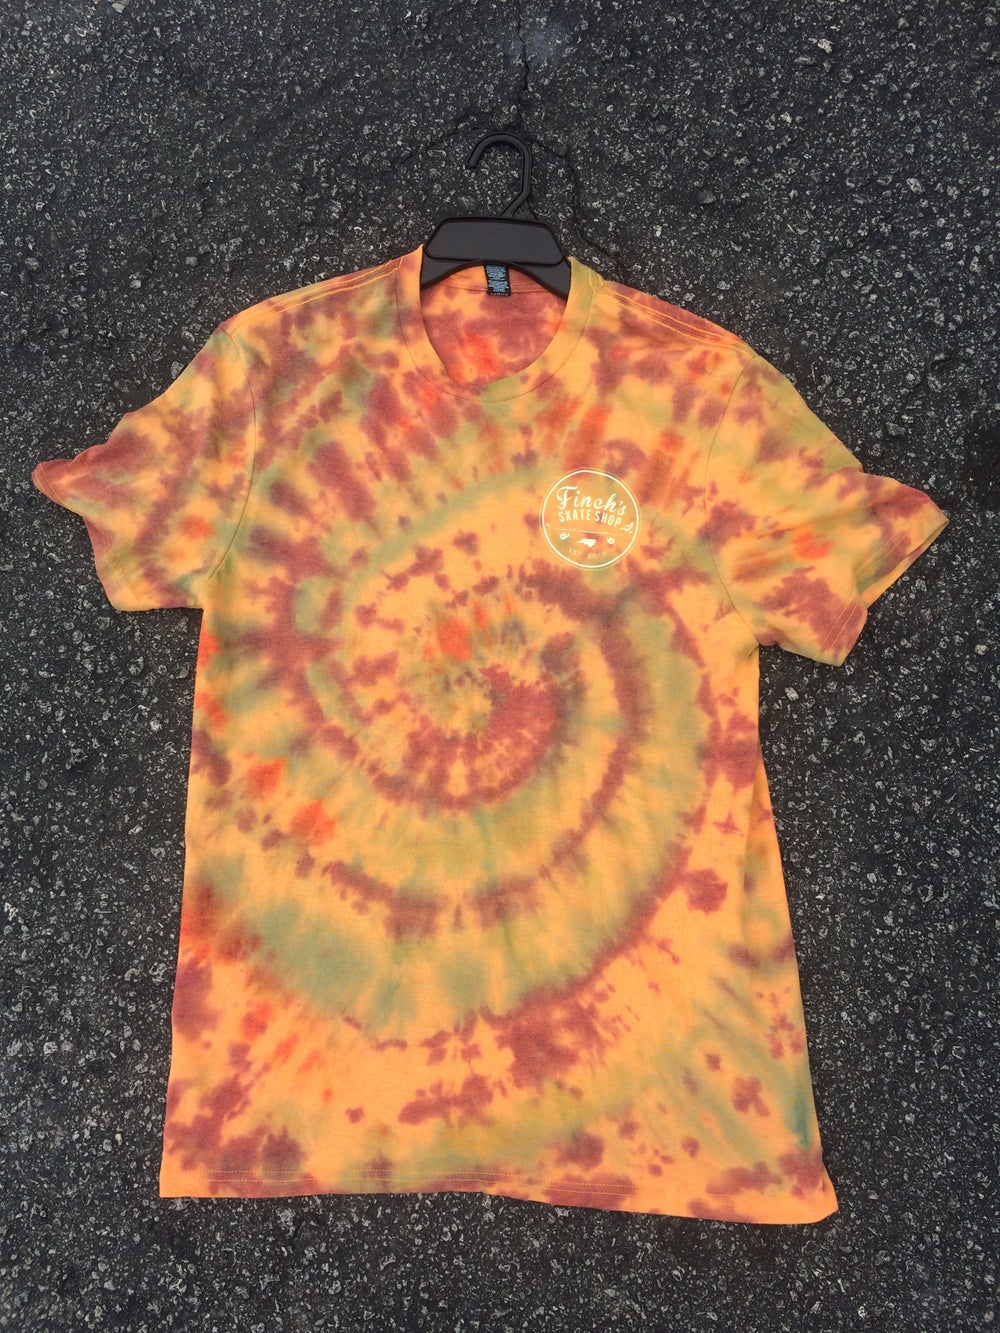 Image of Tie Dye OG Logo T-Shirt  (Each shirt is different and individual made)